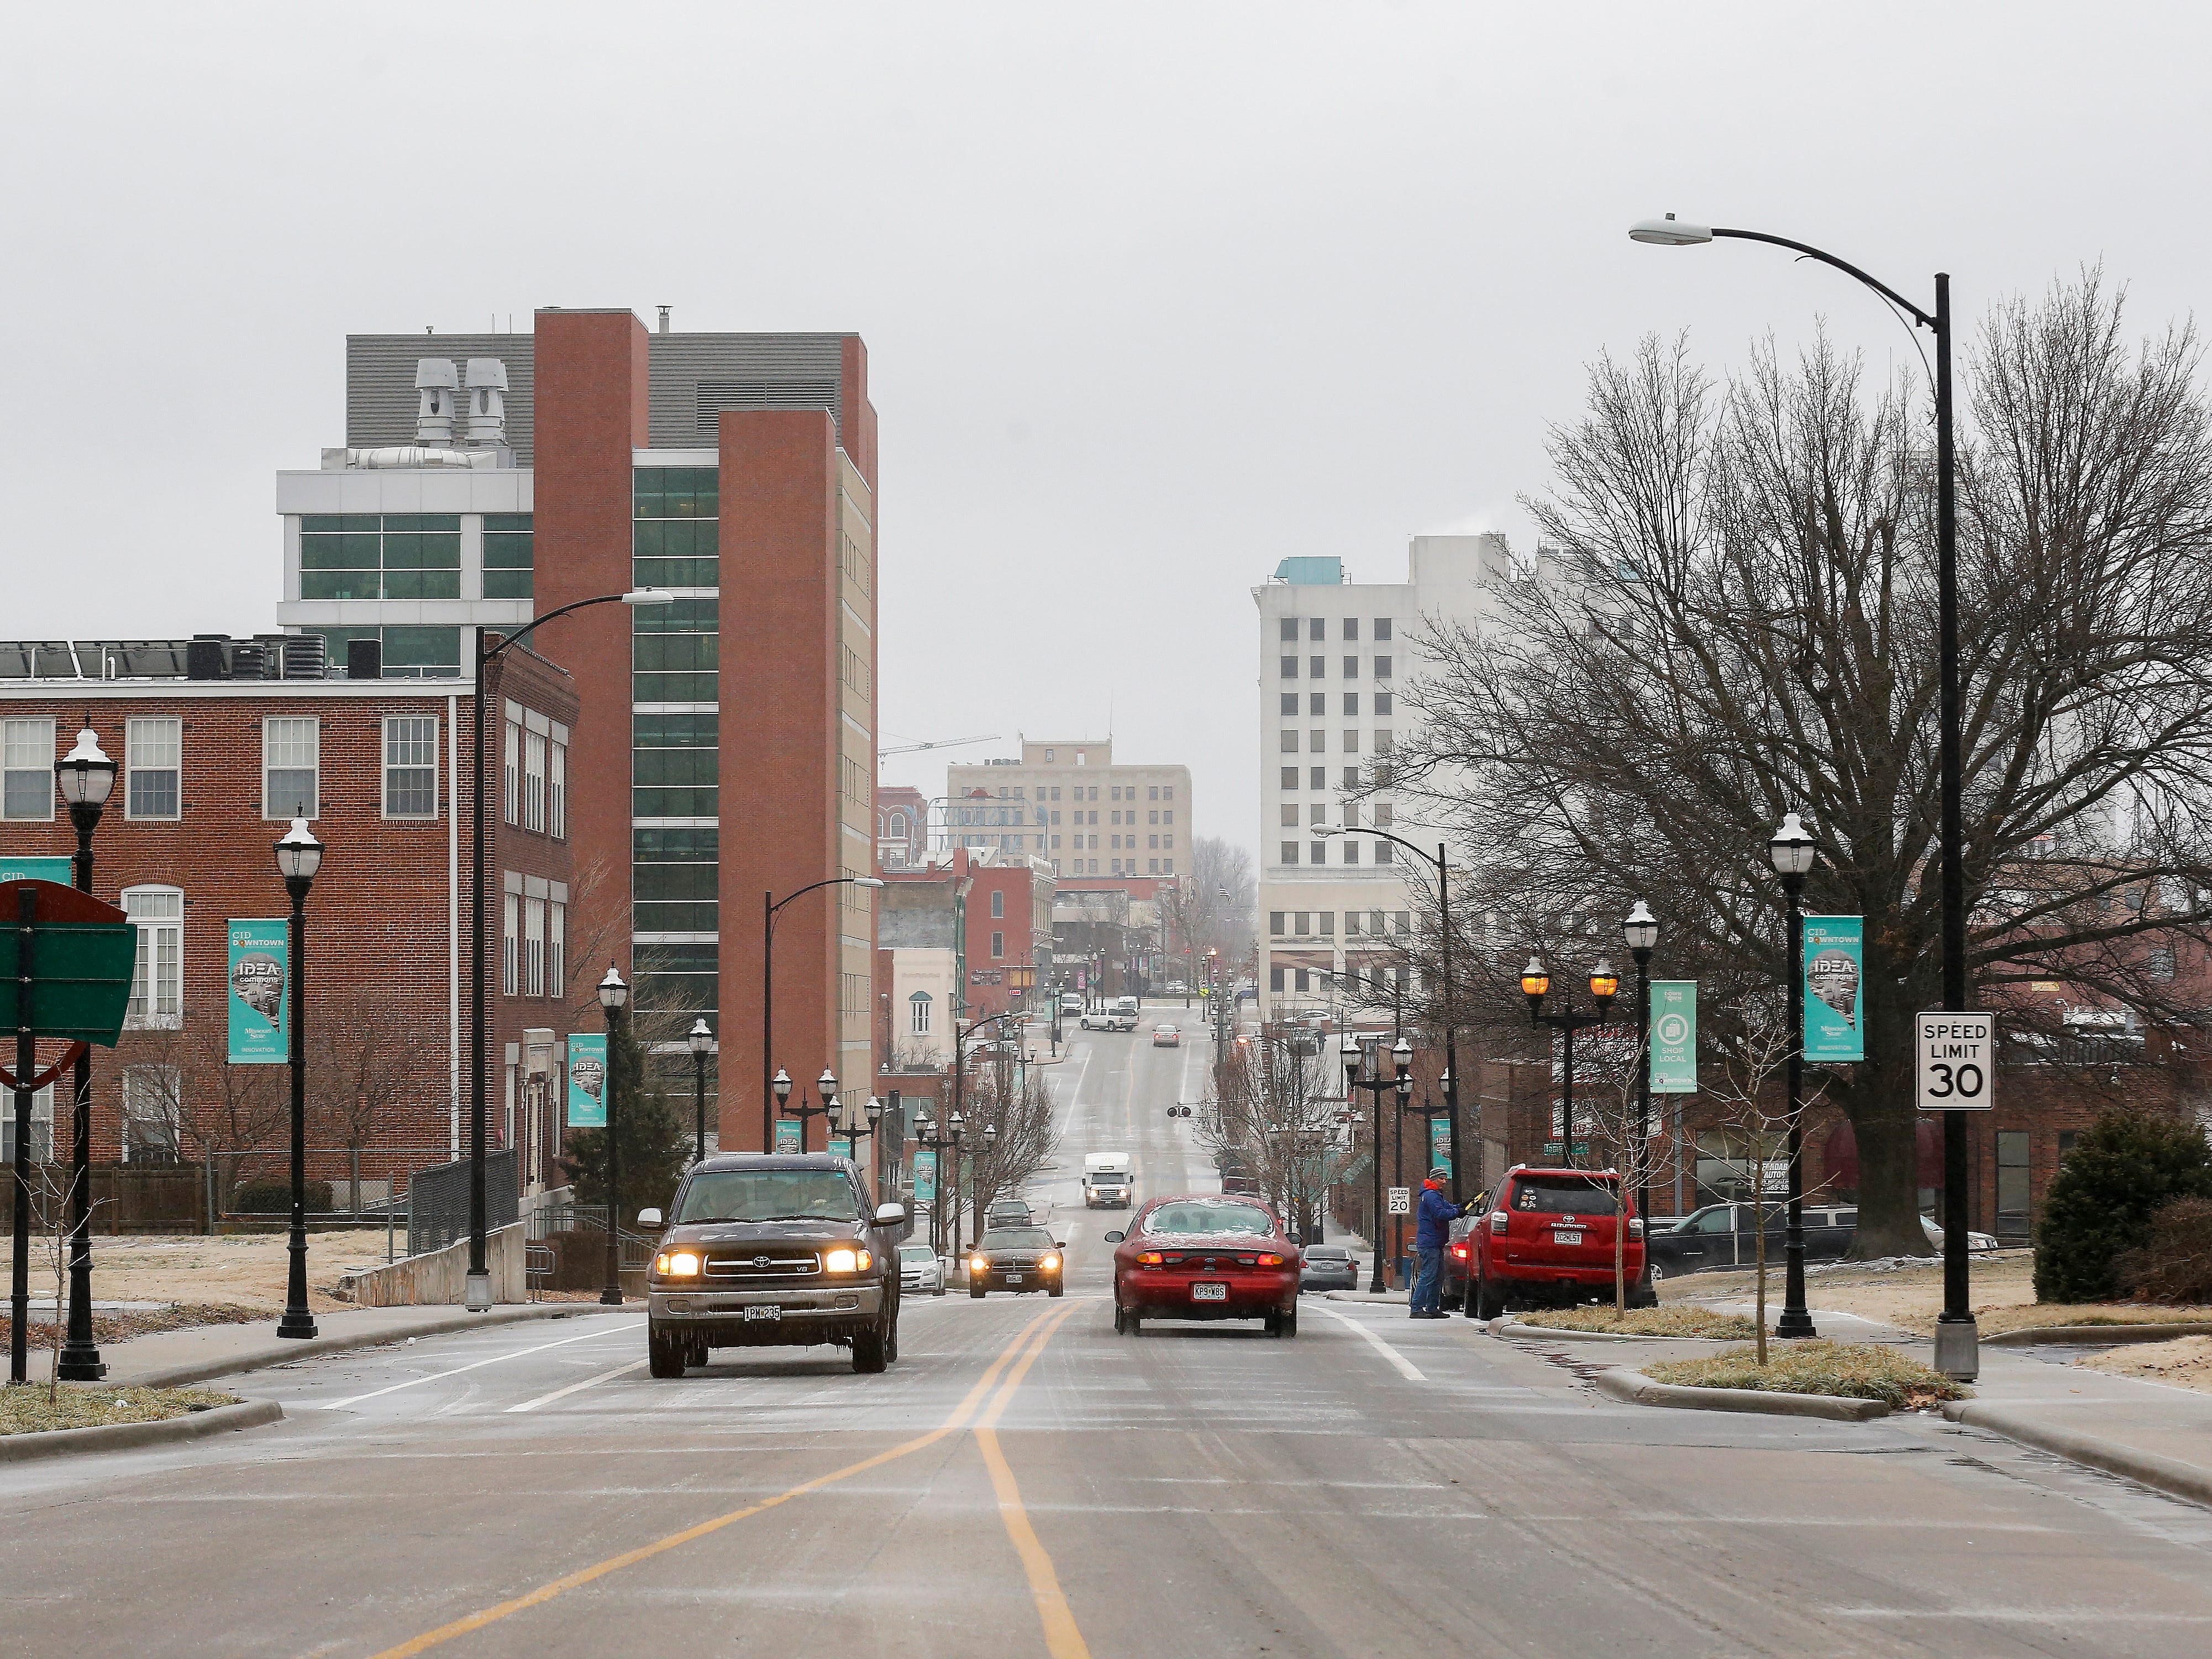 A view down Boonville Avenue toward Park Central Square on Friday, Feb. 15, 2019. Temperatures were in the upper 20s on Friday.